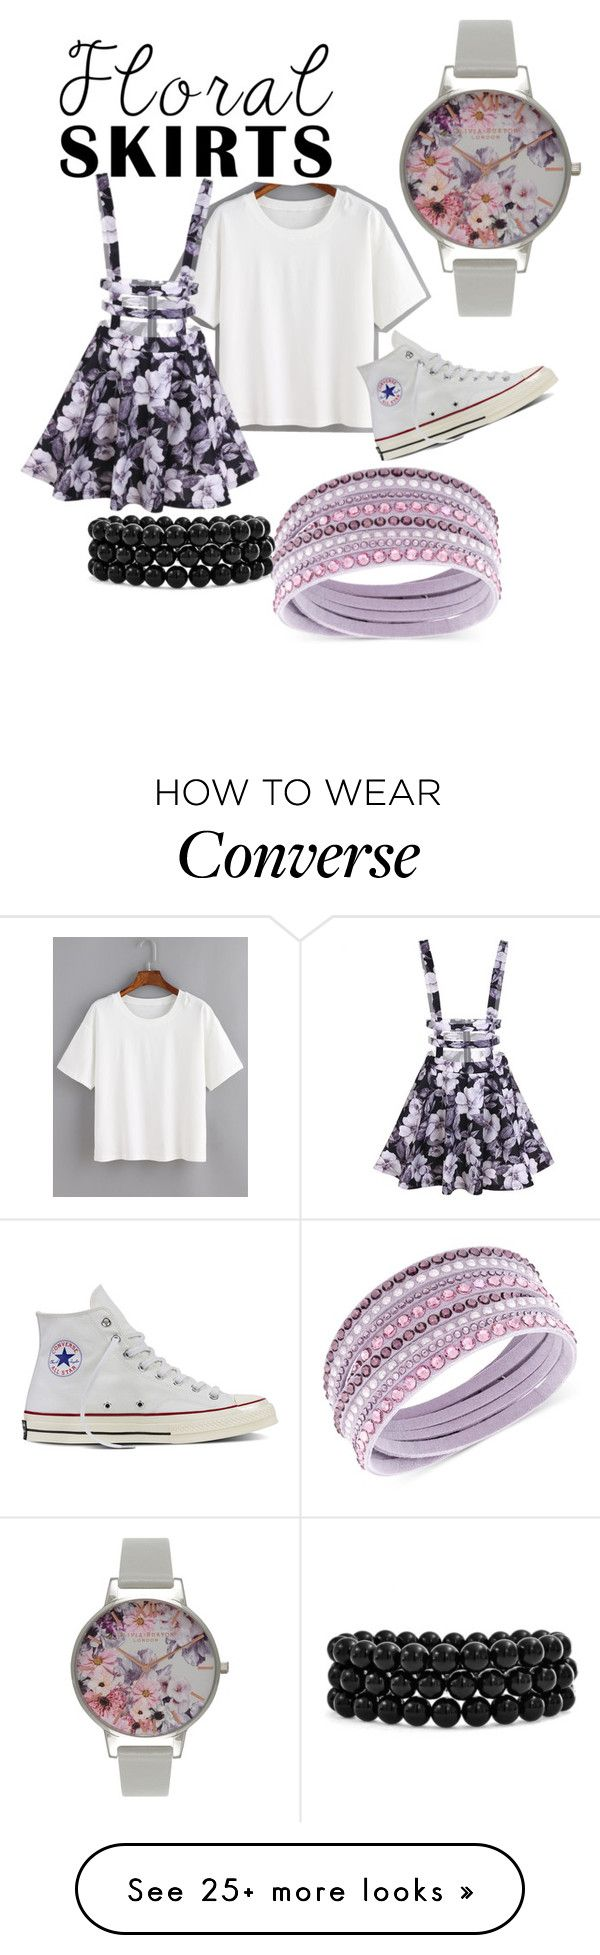 """Untitled #106"" by musicjay on Polyvore featuring Swarovski, Olivia Burton, Converse, Bling Jewelry and Floralskirts"